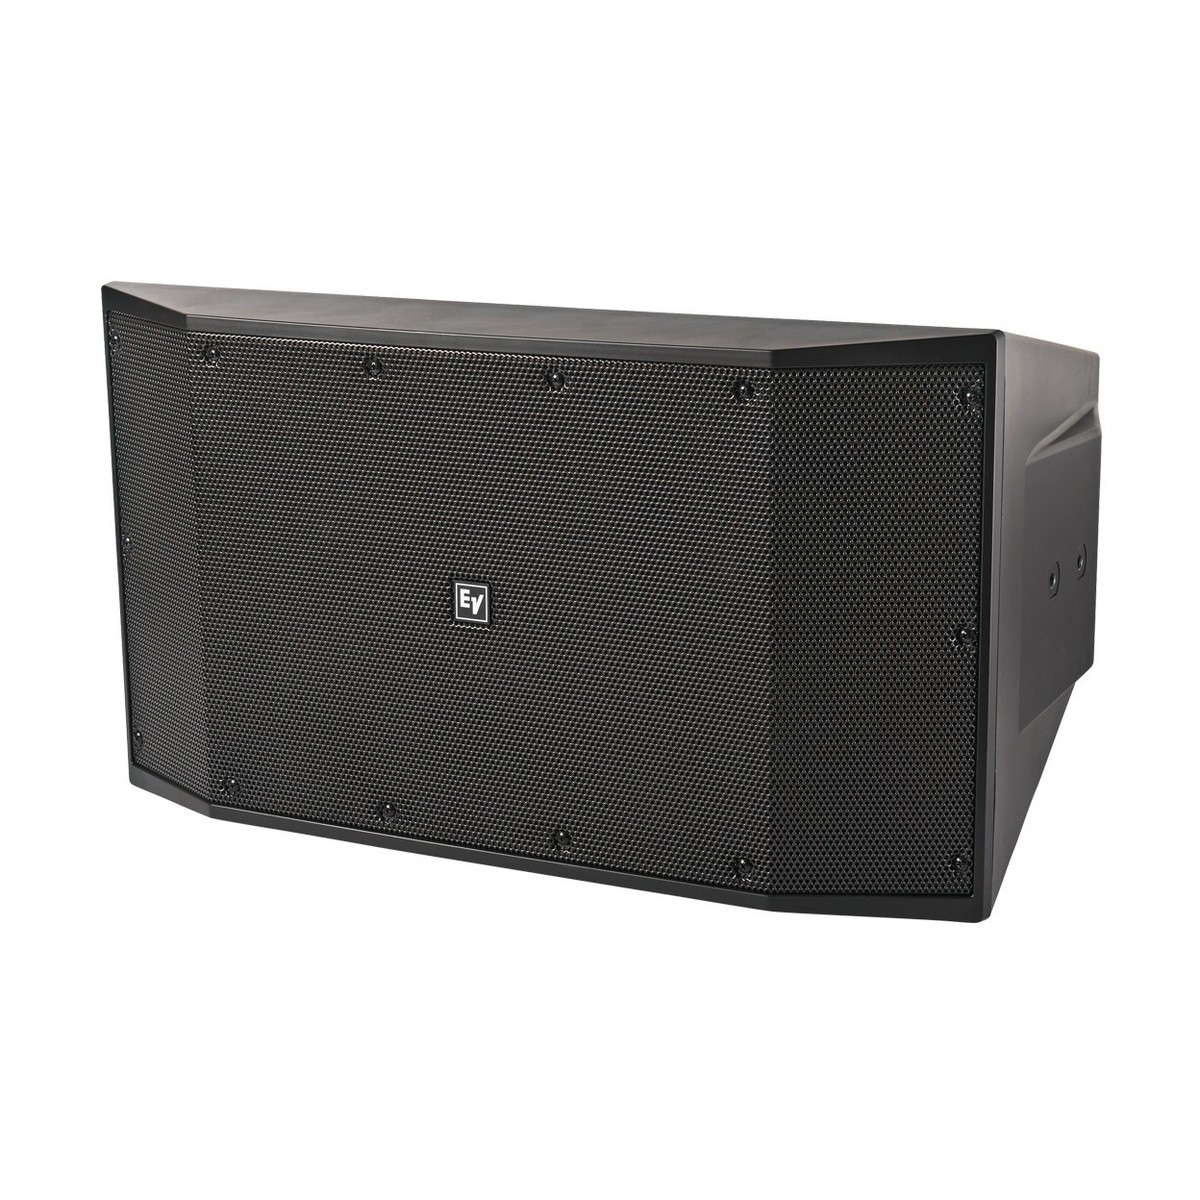 Electro Voice Evid S101 Installation Subwoofer